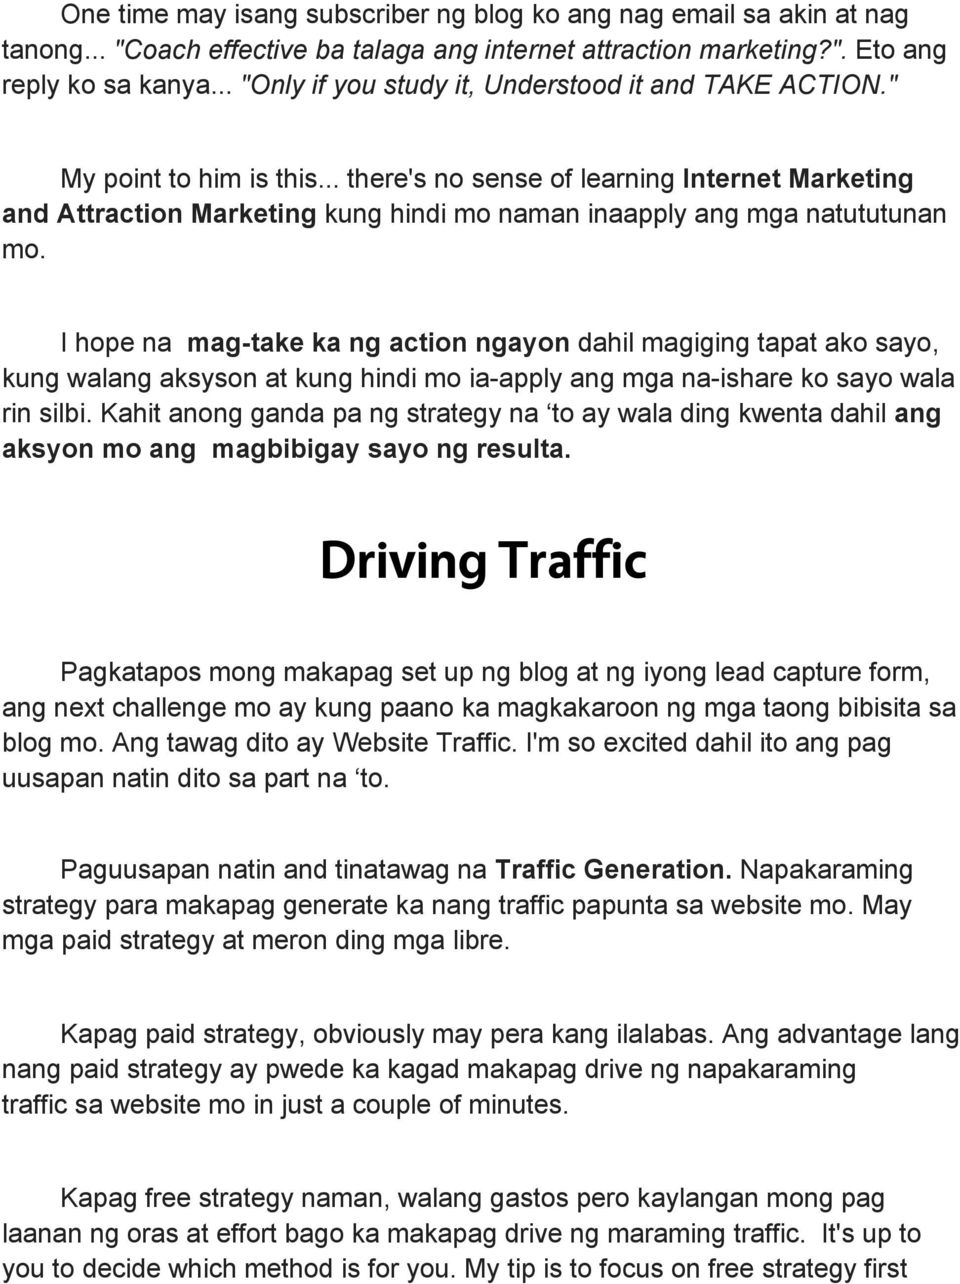 .. there's no sense of learning Internet Marketing and Attraction Marketing kung hindi mo naman inaapply ang mga natututunan mo.